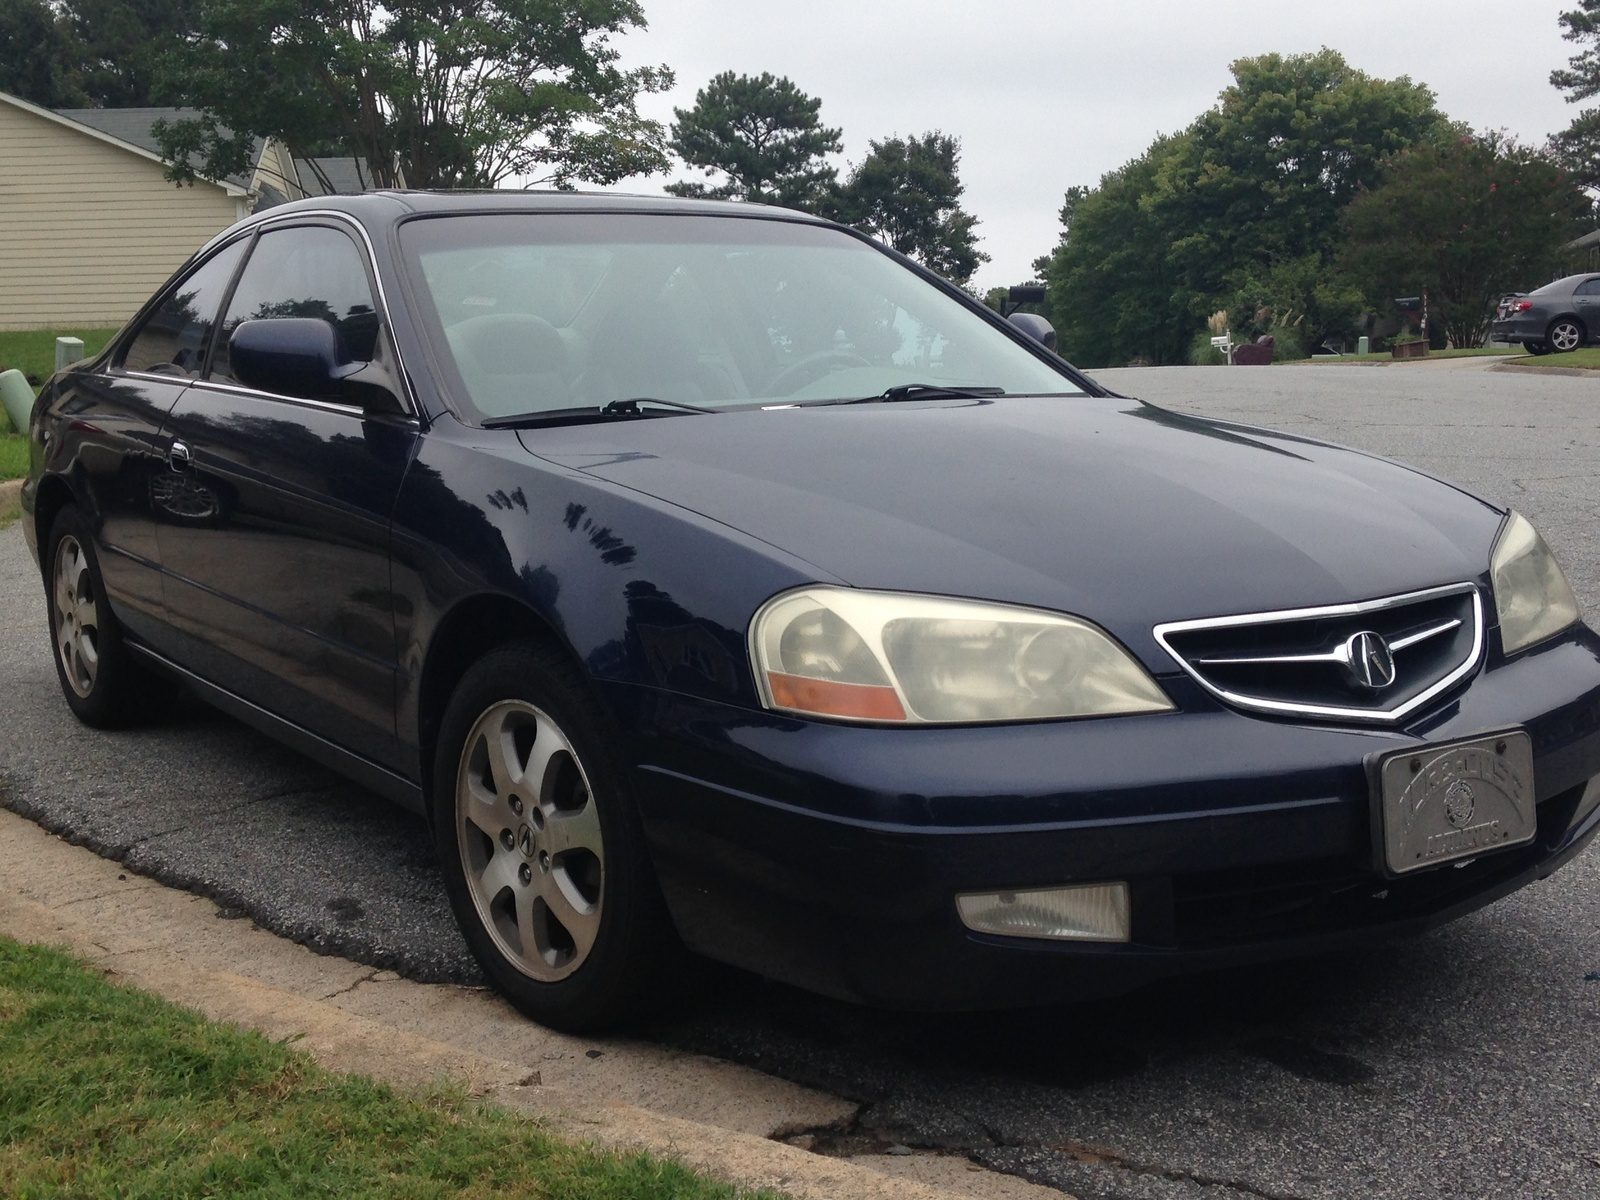 Acura CL Questions - My 2001 Acura jerks after a certain